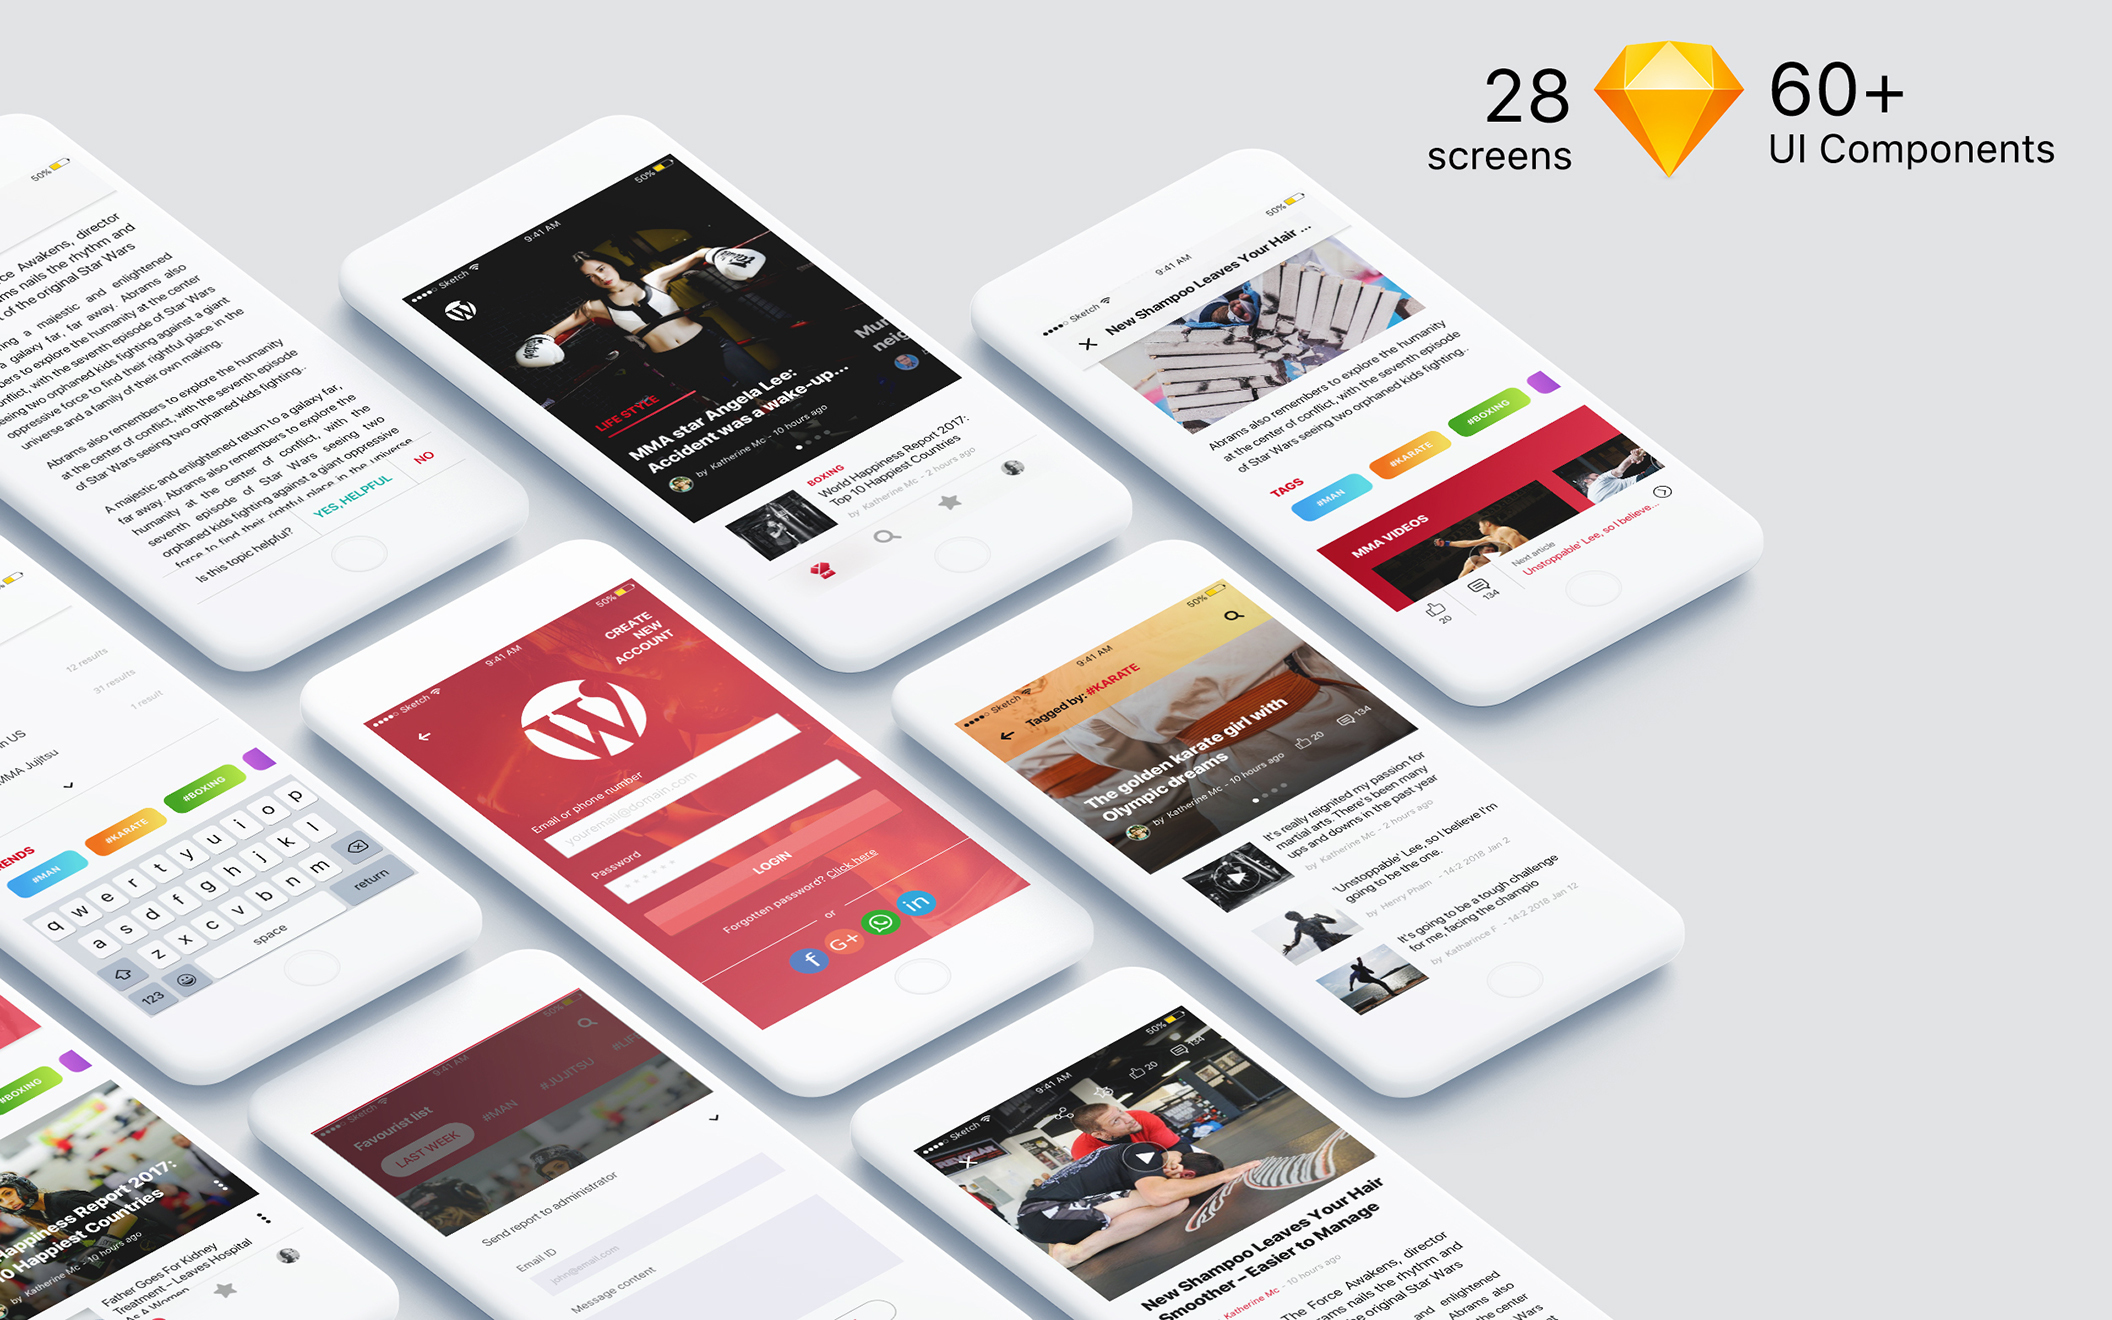 MB UI Kit - Cross Platform design for Newspaper, Blog & Magazine